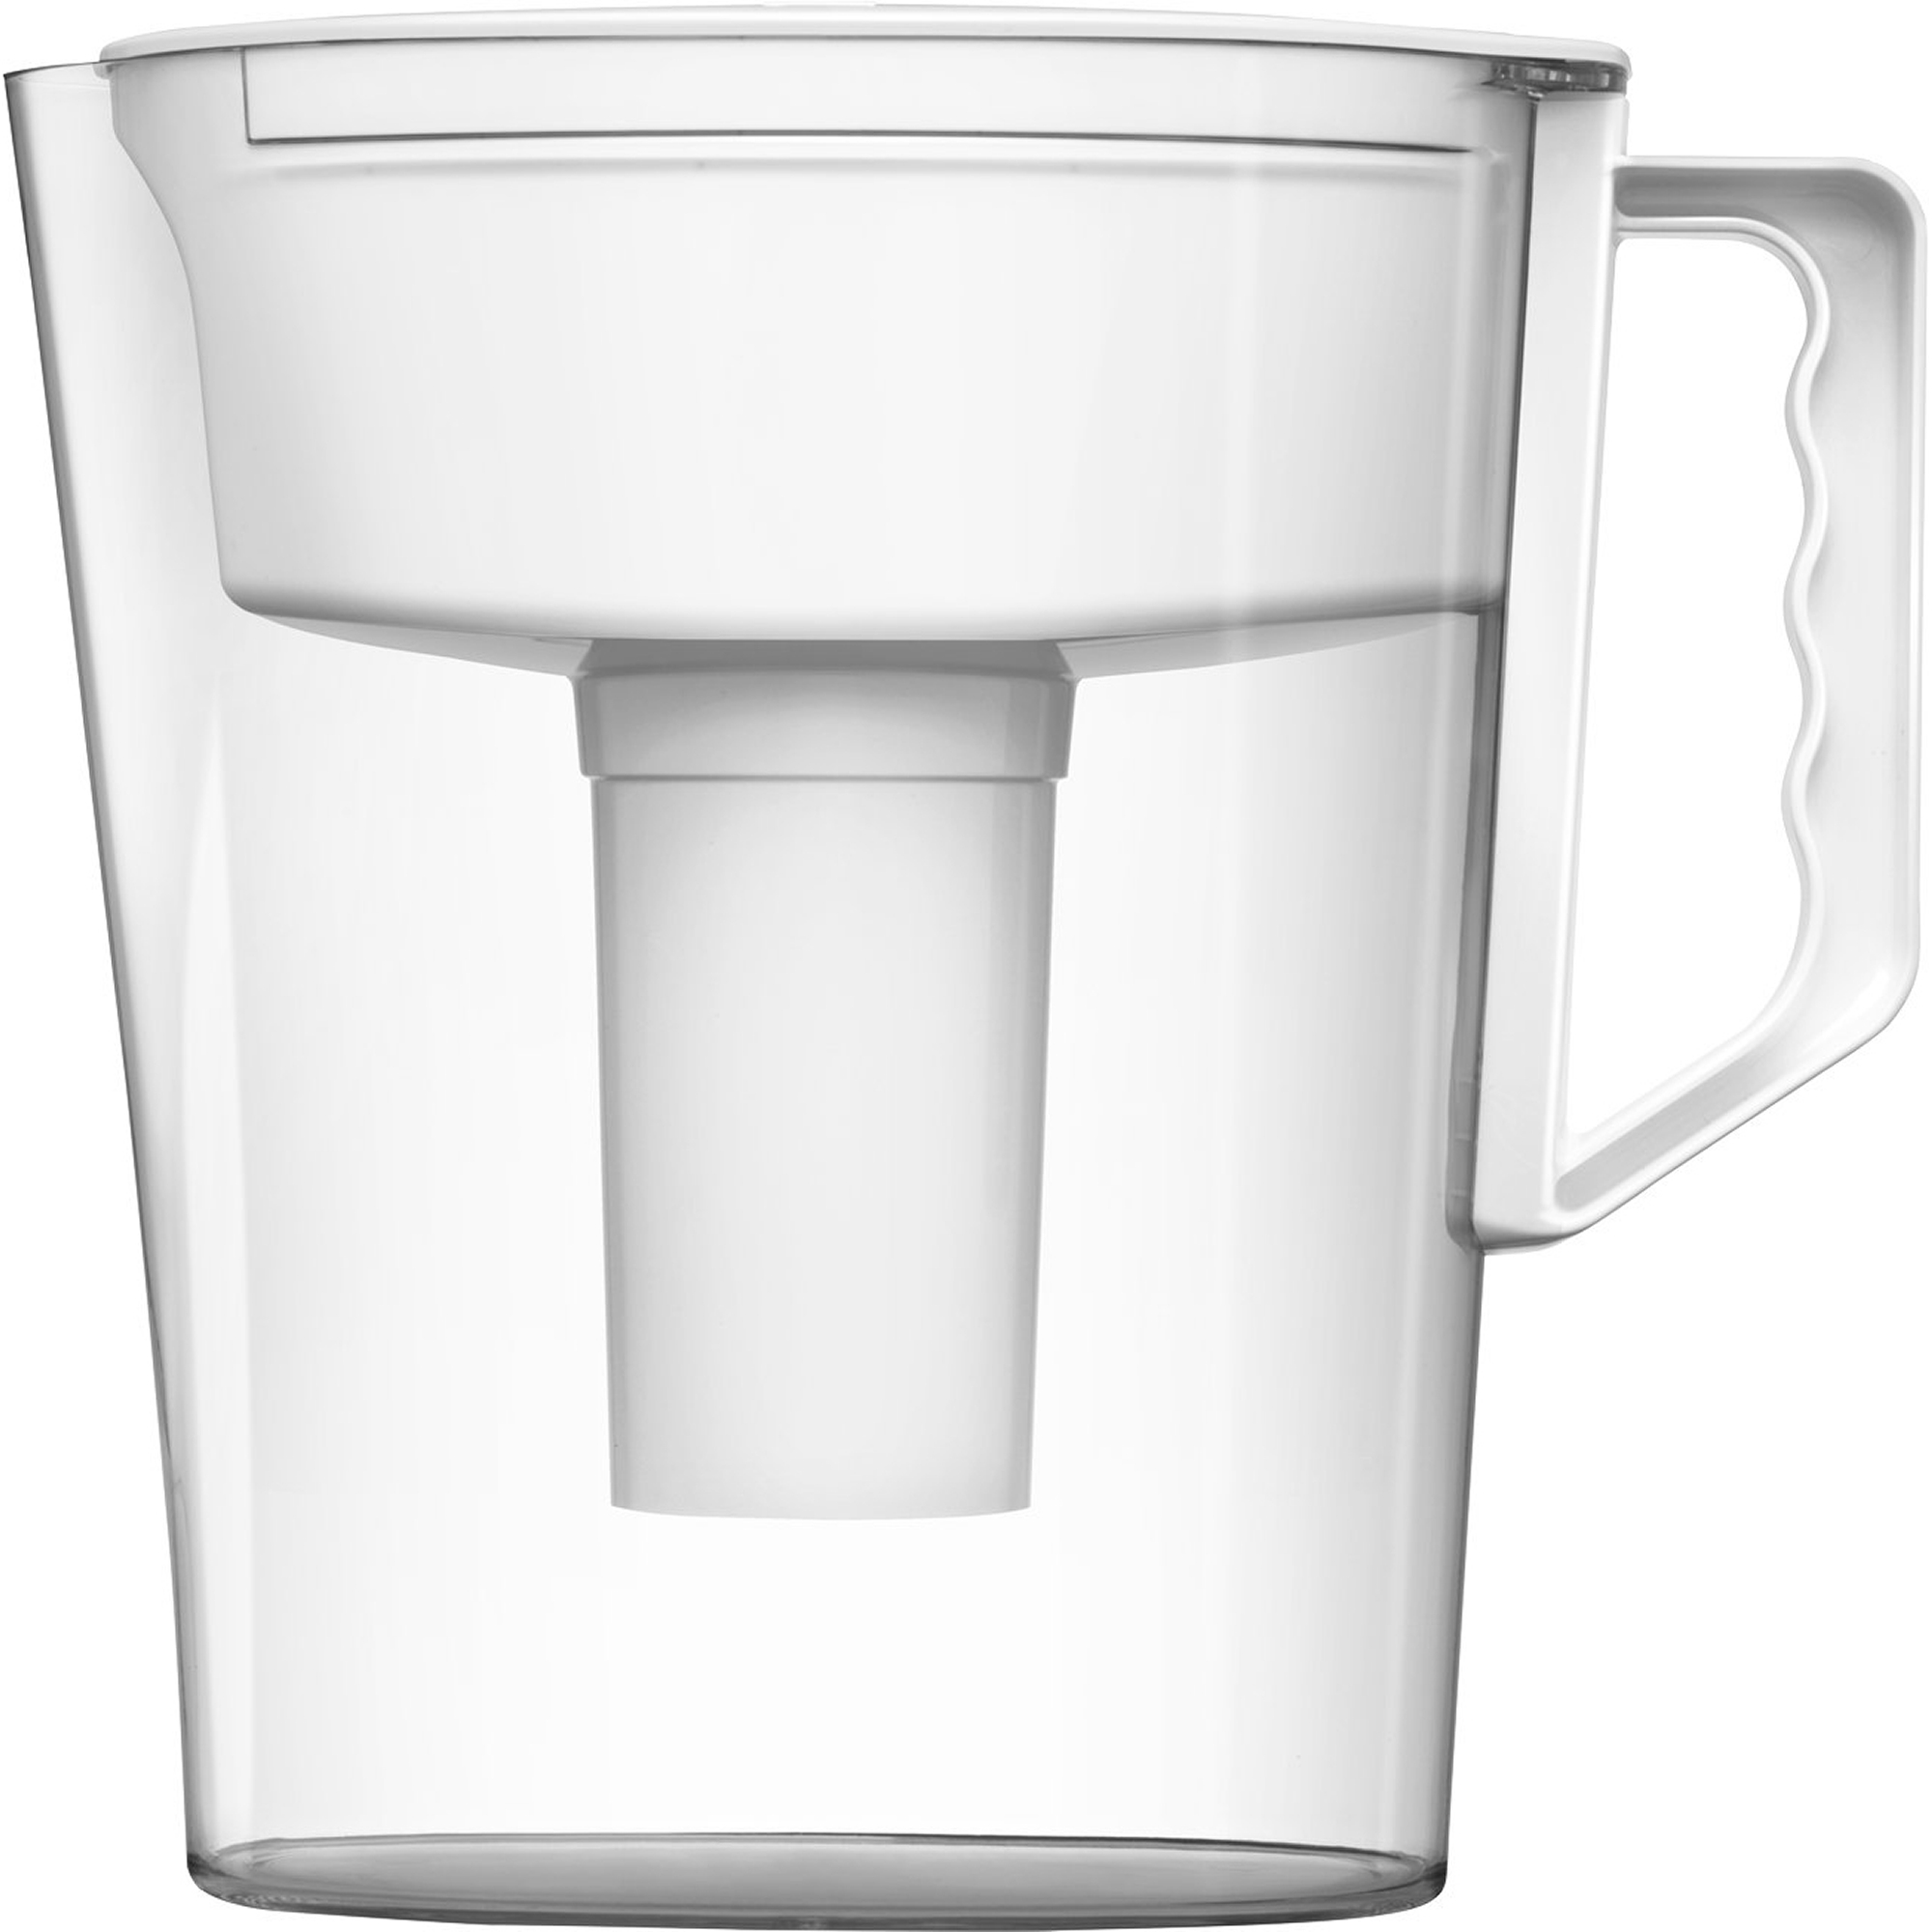 Brita 5 Cup Slim BPA Free Water Pitcher with 1 Filter, White